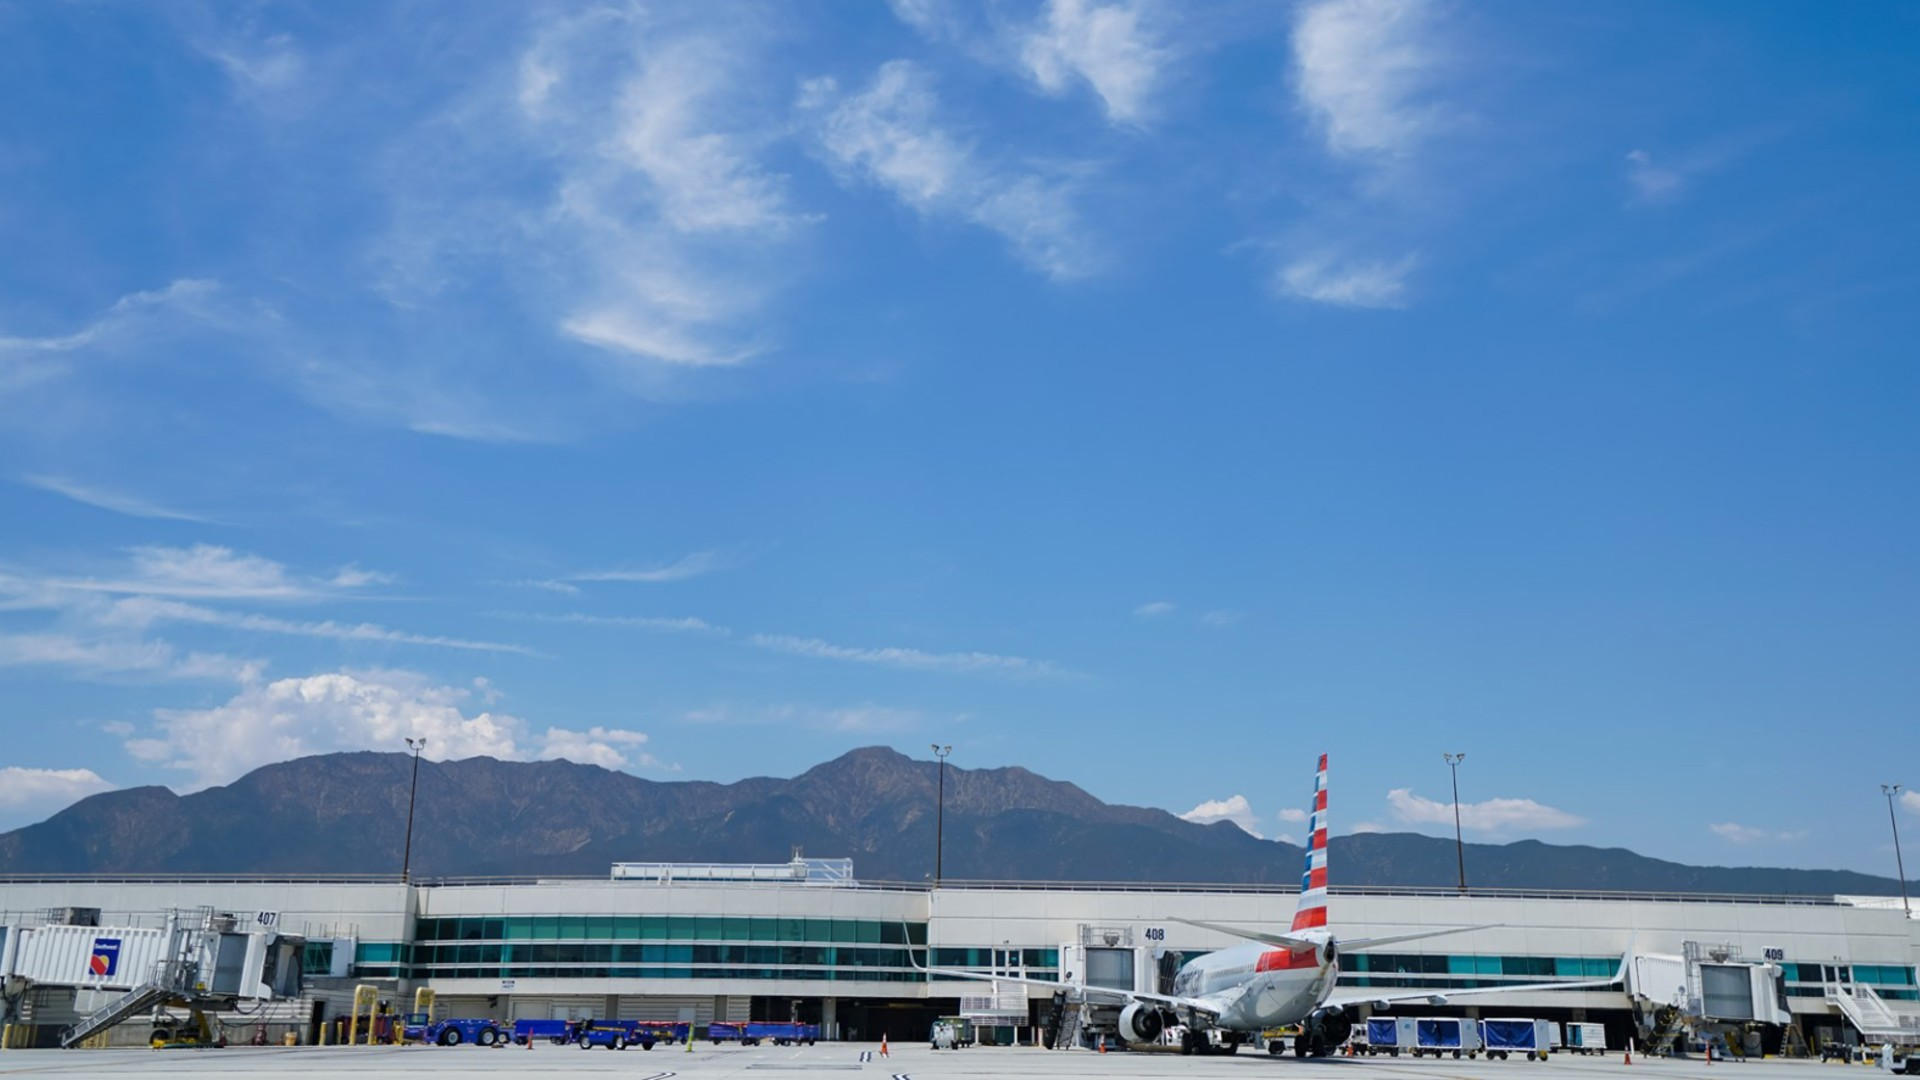 Ontario International Airport is seen in a photo from the airport's Facebook page.